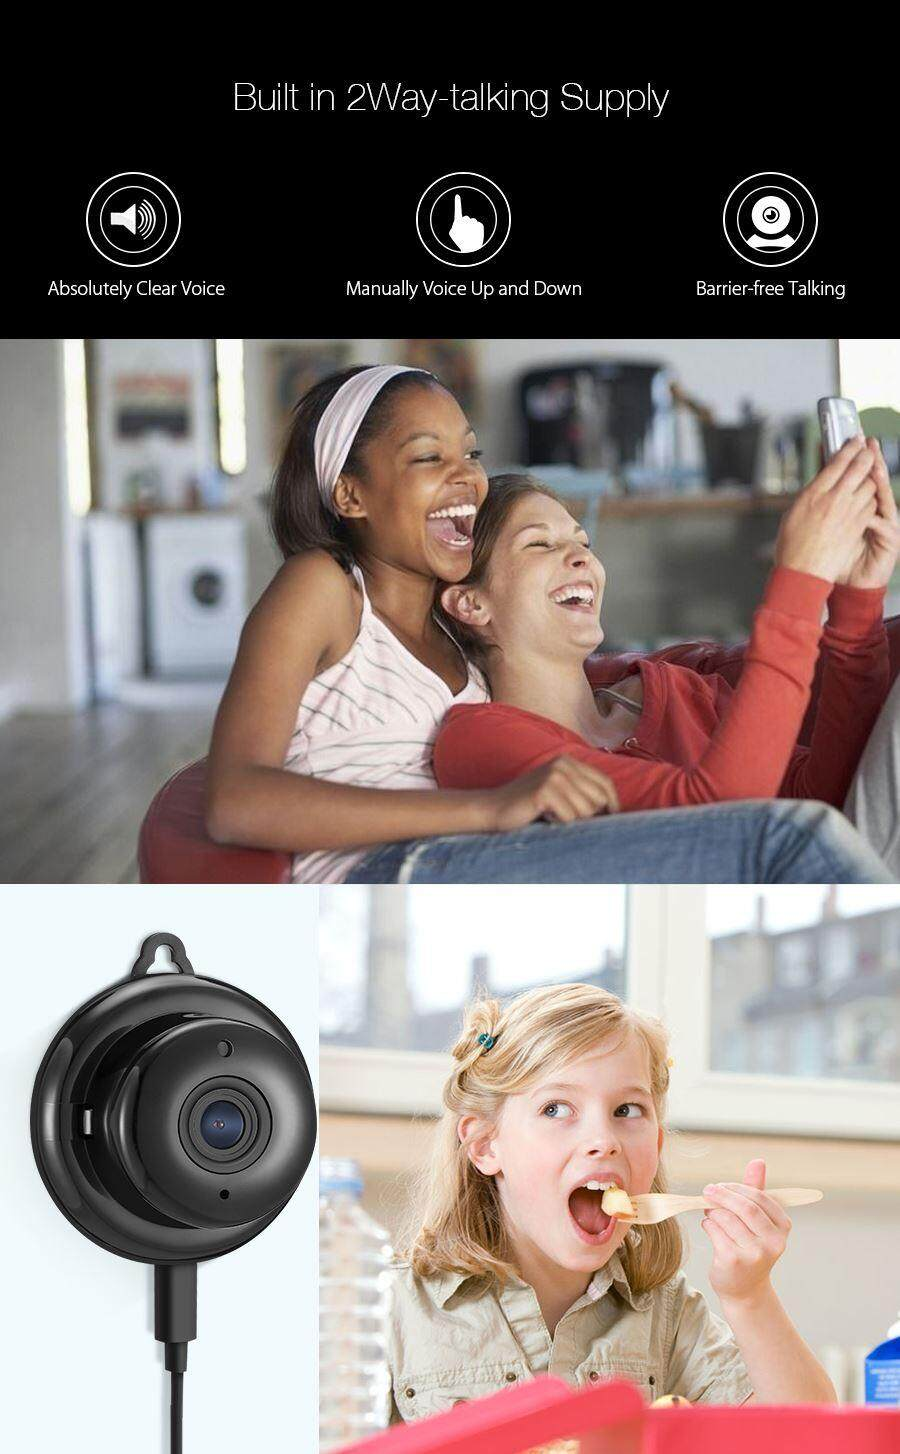 digoo dg-m1q 960p night vision mini wifi smart home security ip camera with onvif support